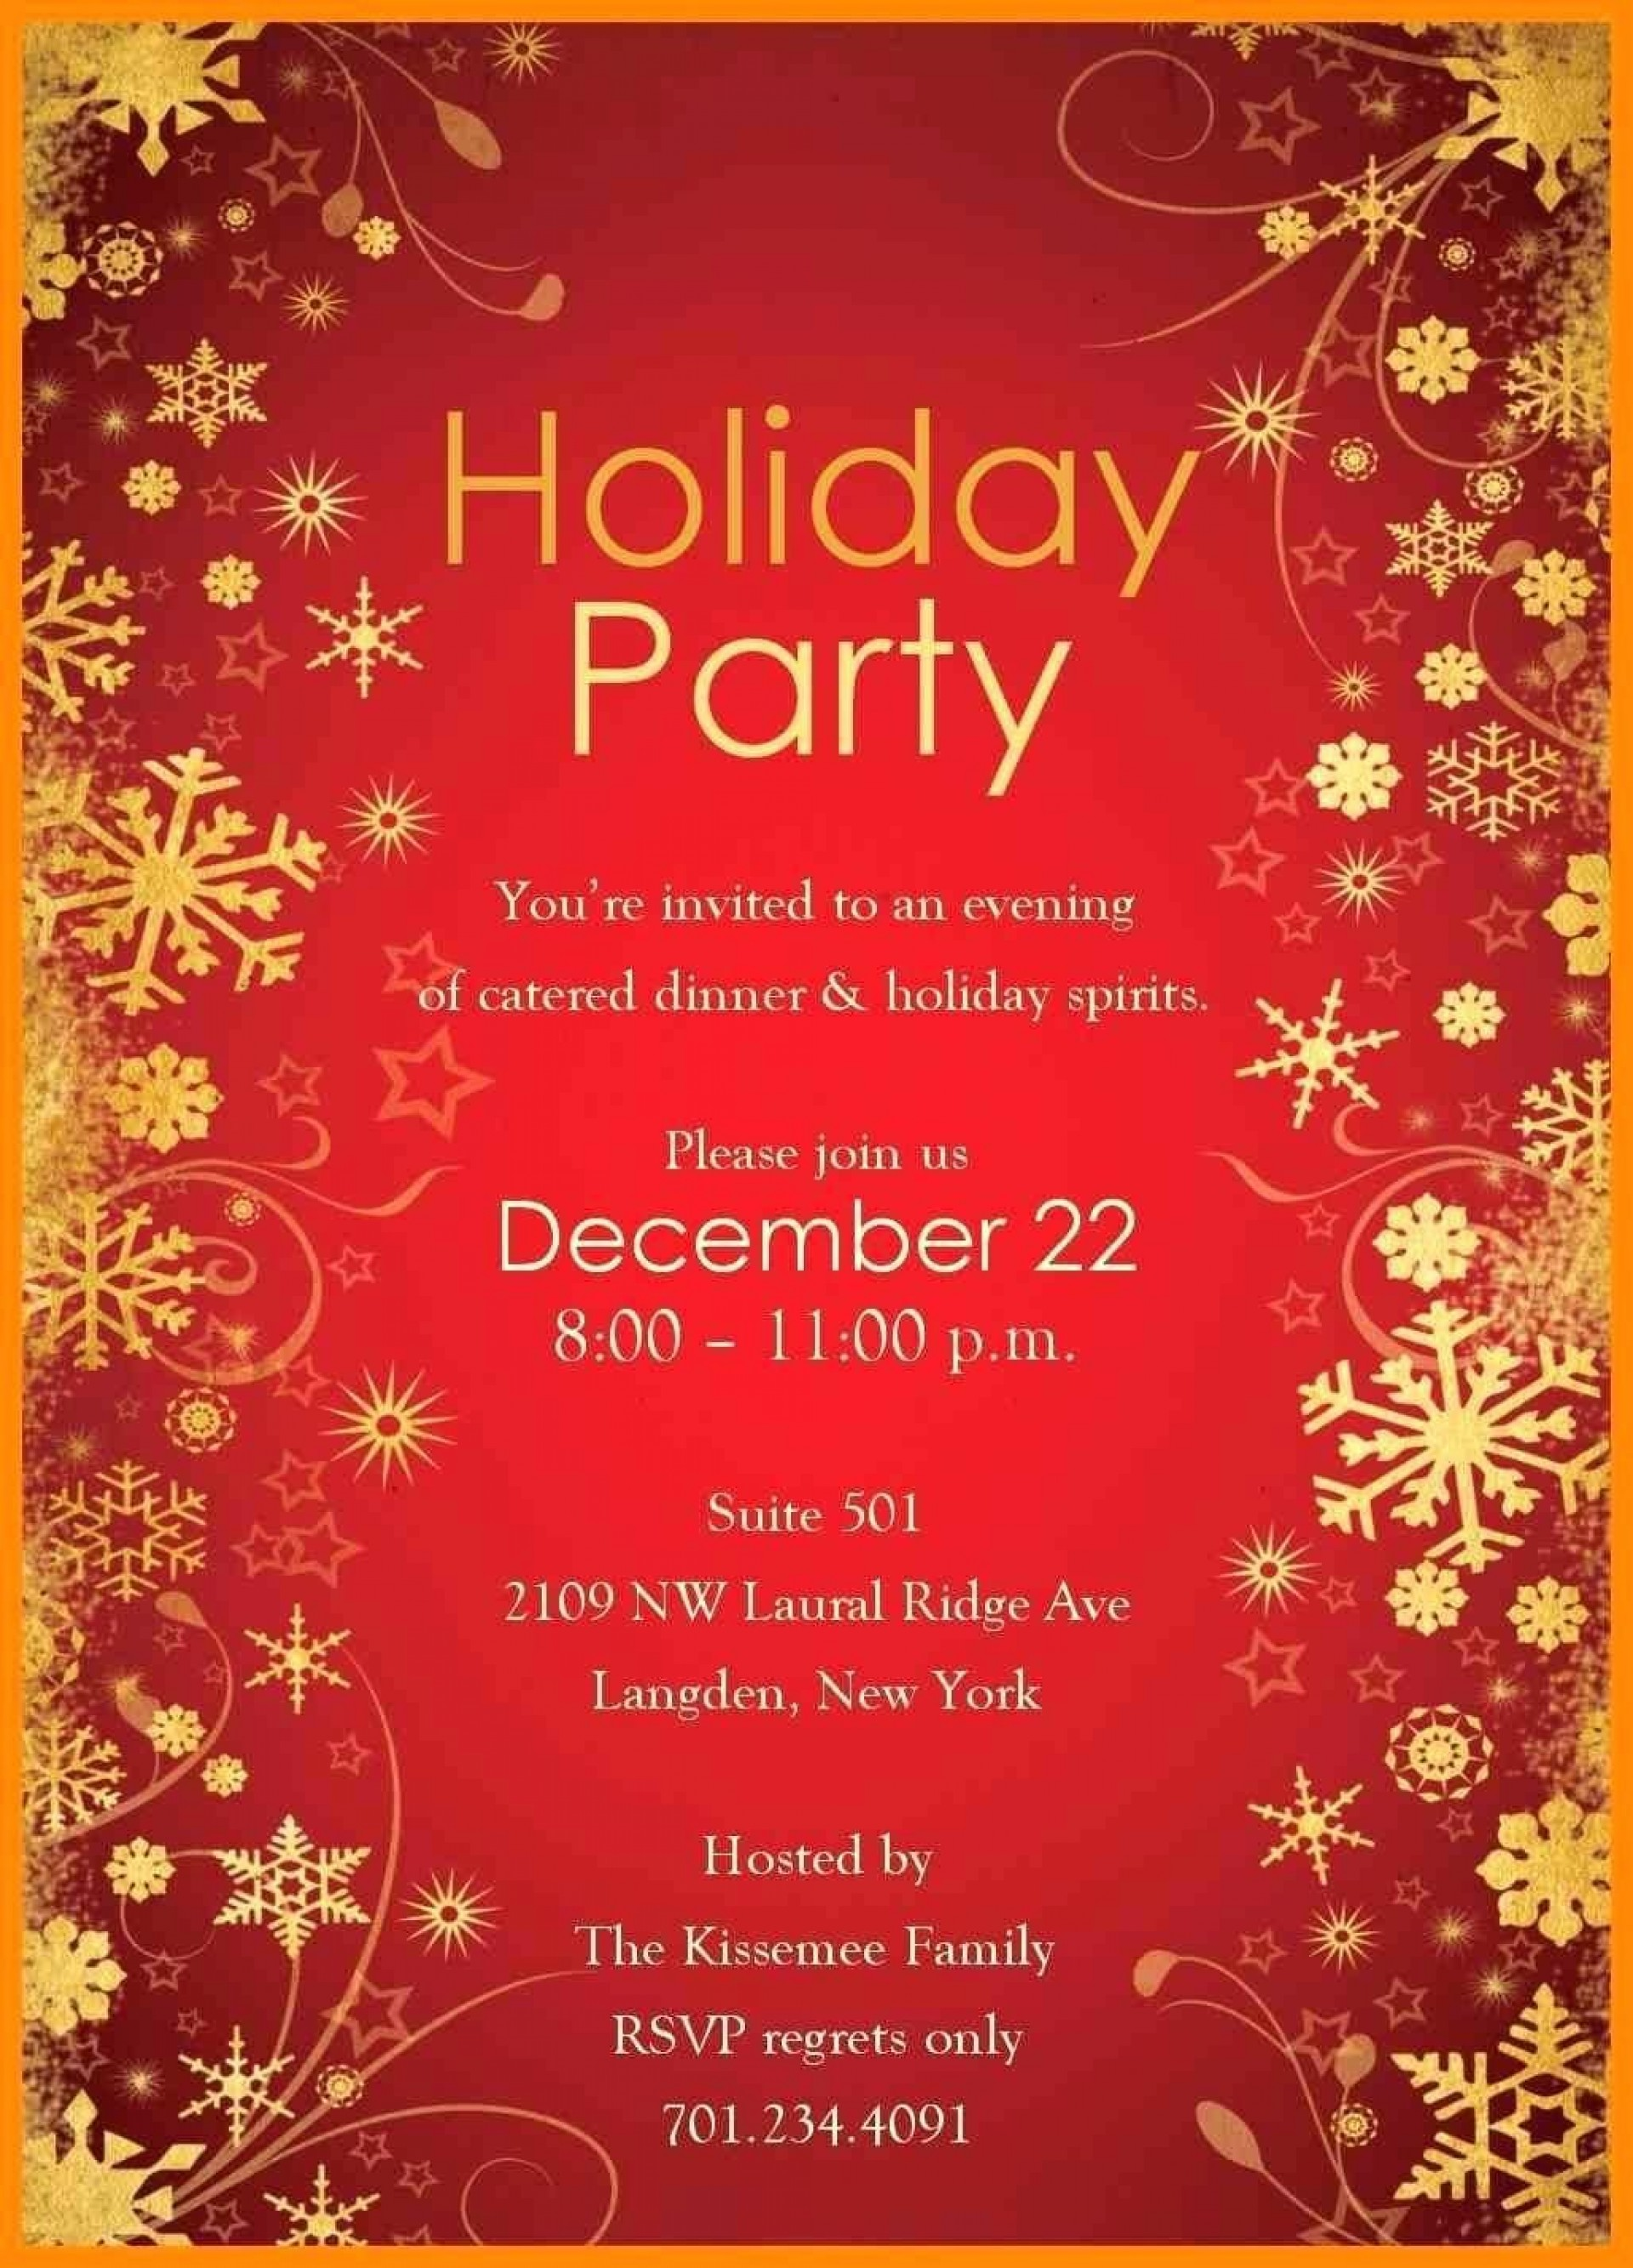 001 Top Free Holiday Party Flyer Template Word High Resolution 1920